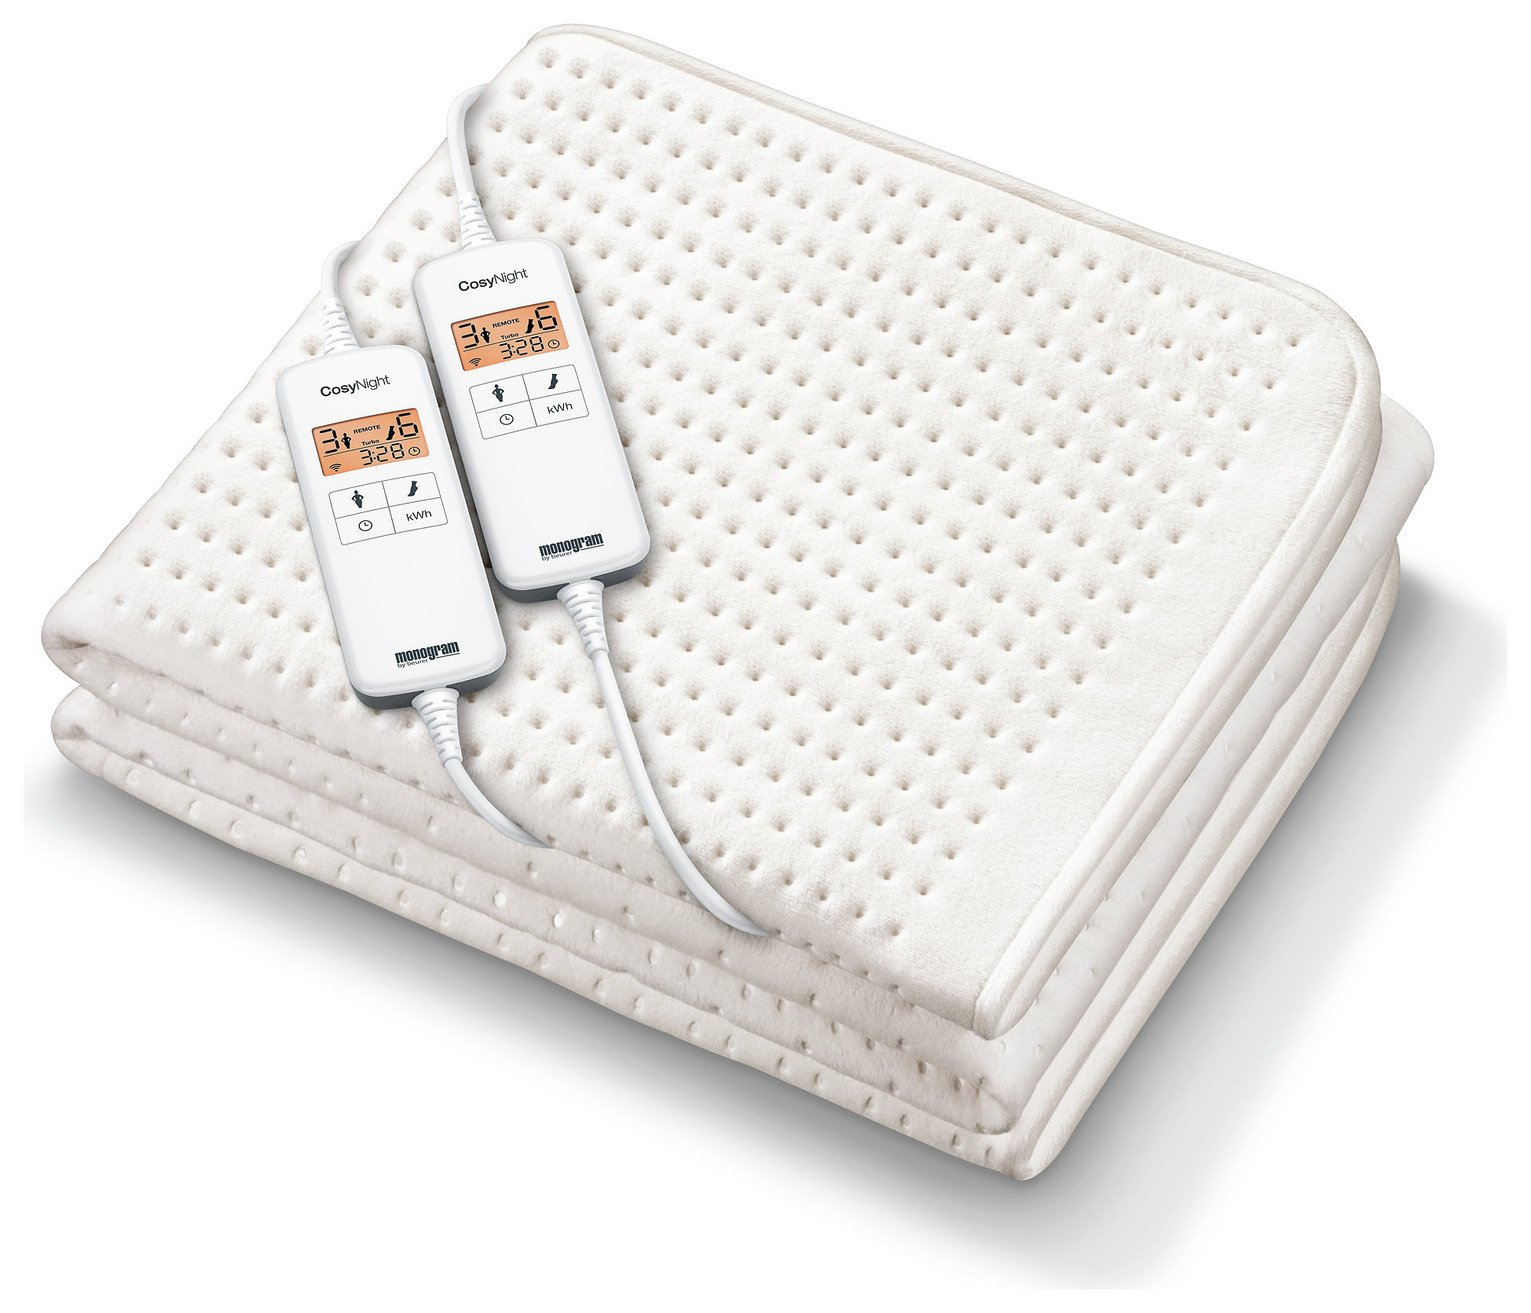 Monogram Smart Electric Blanket - Double